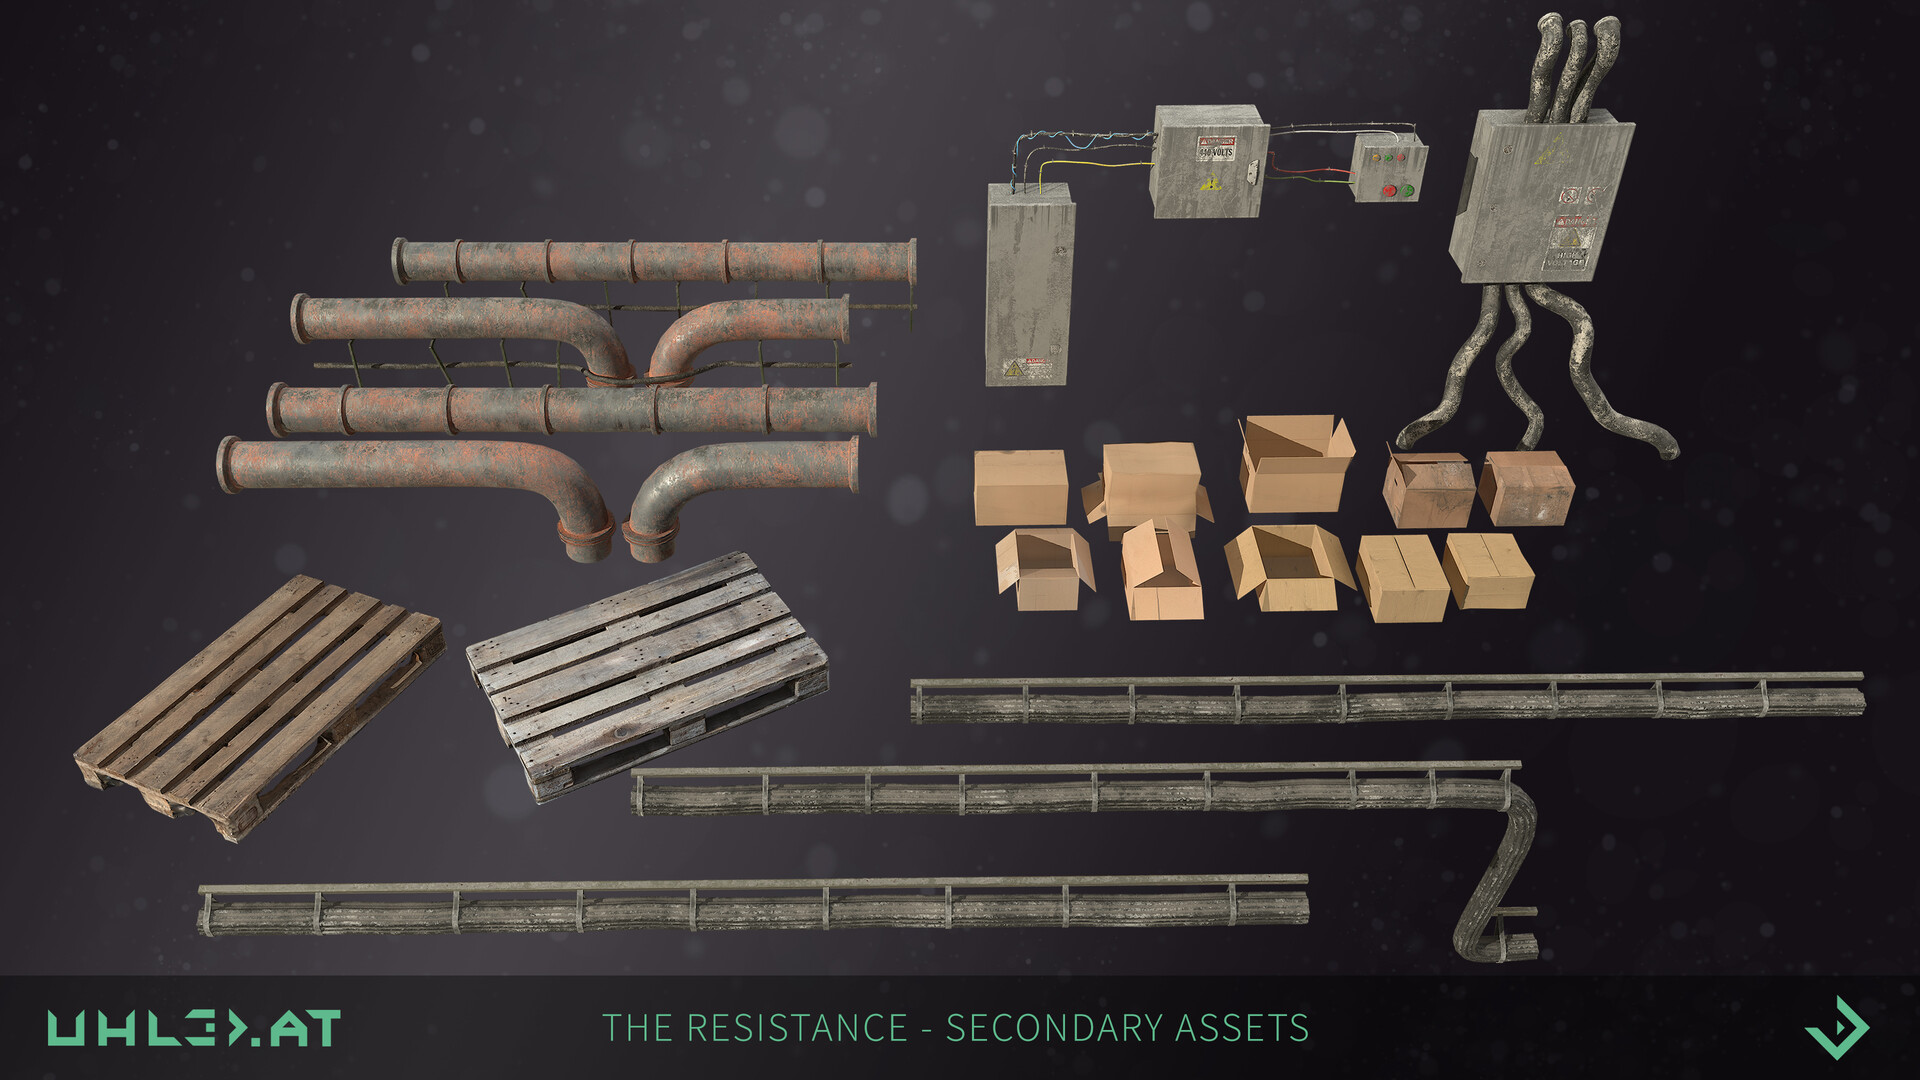 Dominik uhl the resistance secondary assets 01